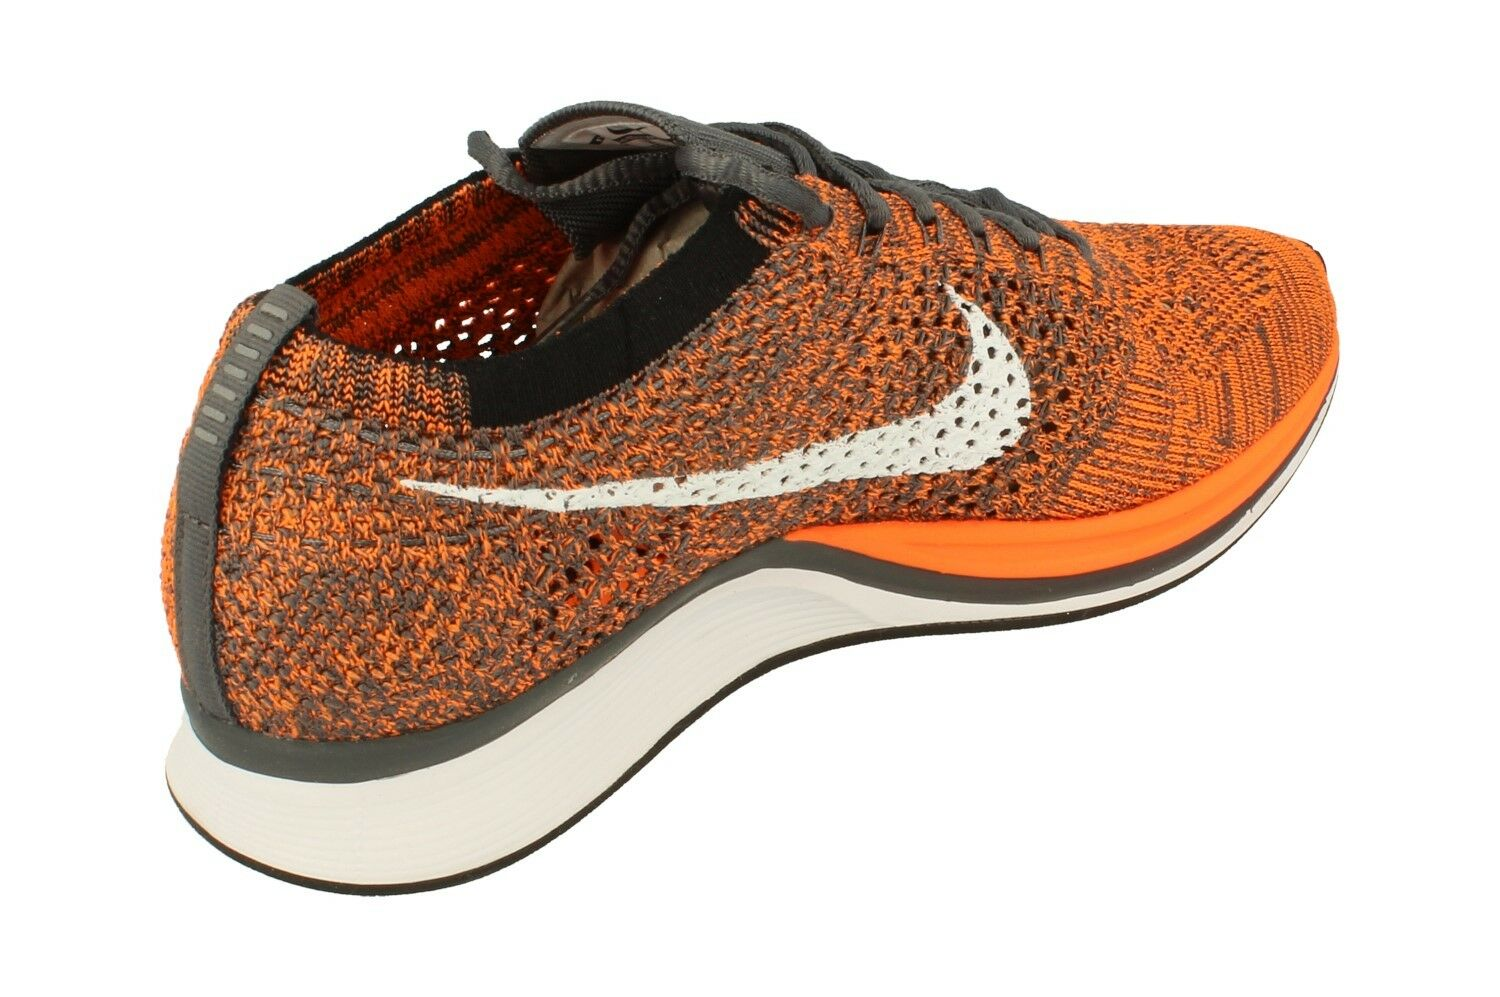 Nike Flyknit Racer Unisex Running 810 Trainers 526628 Sneakers Schuhes 810 Running adf429